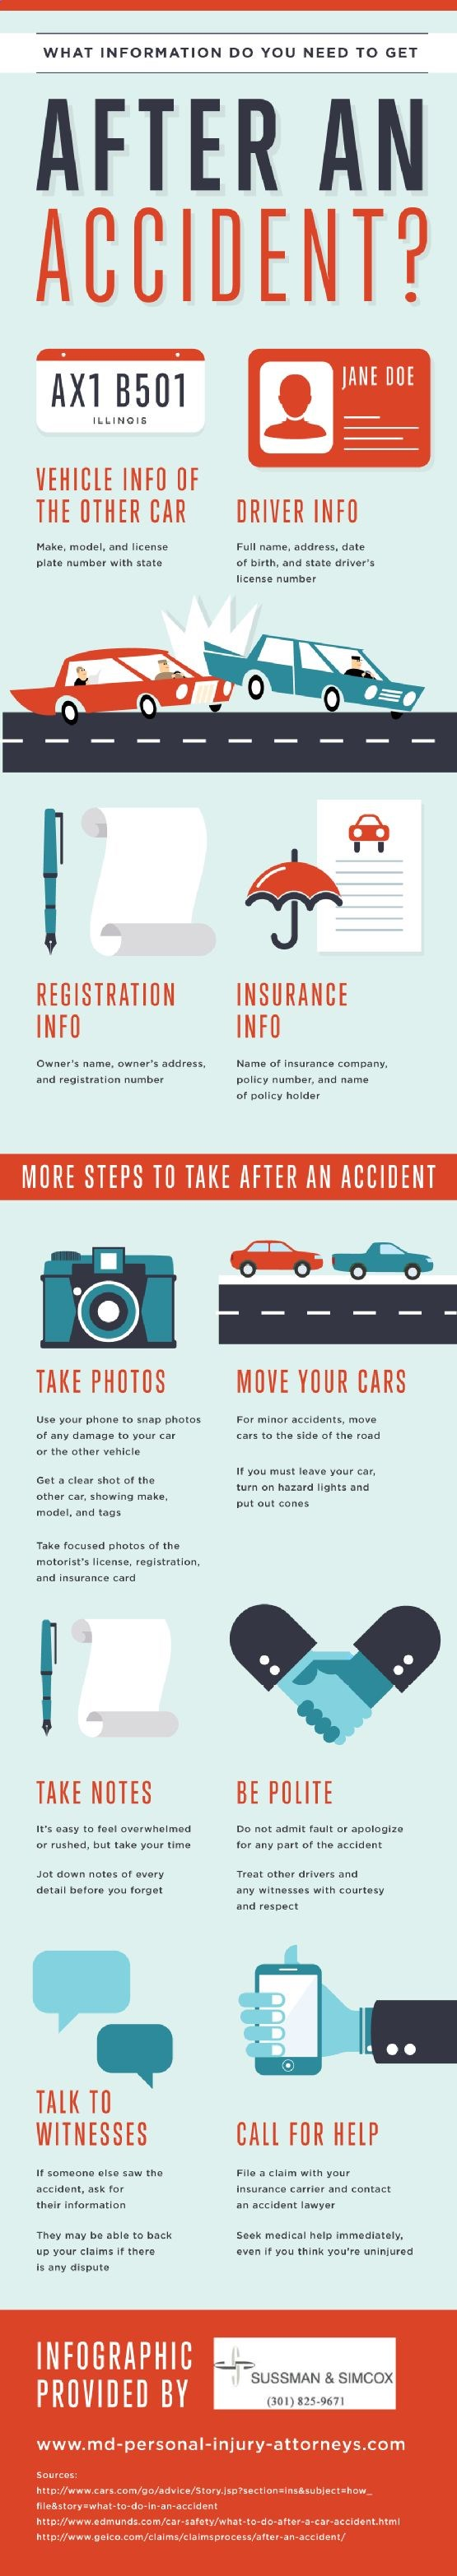 What Information Do You Need To Get After An Accident